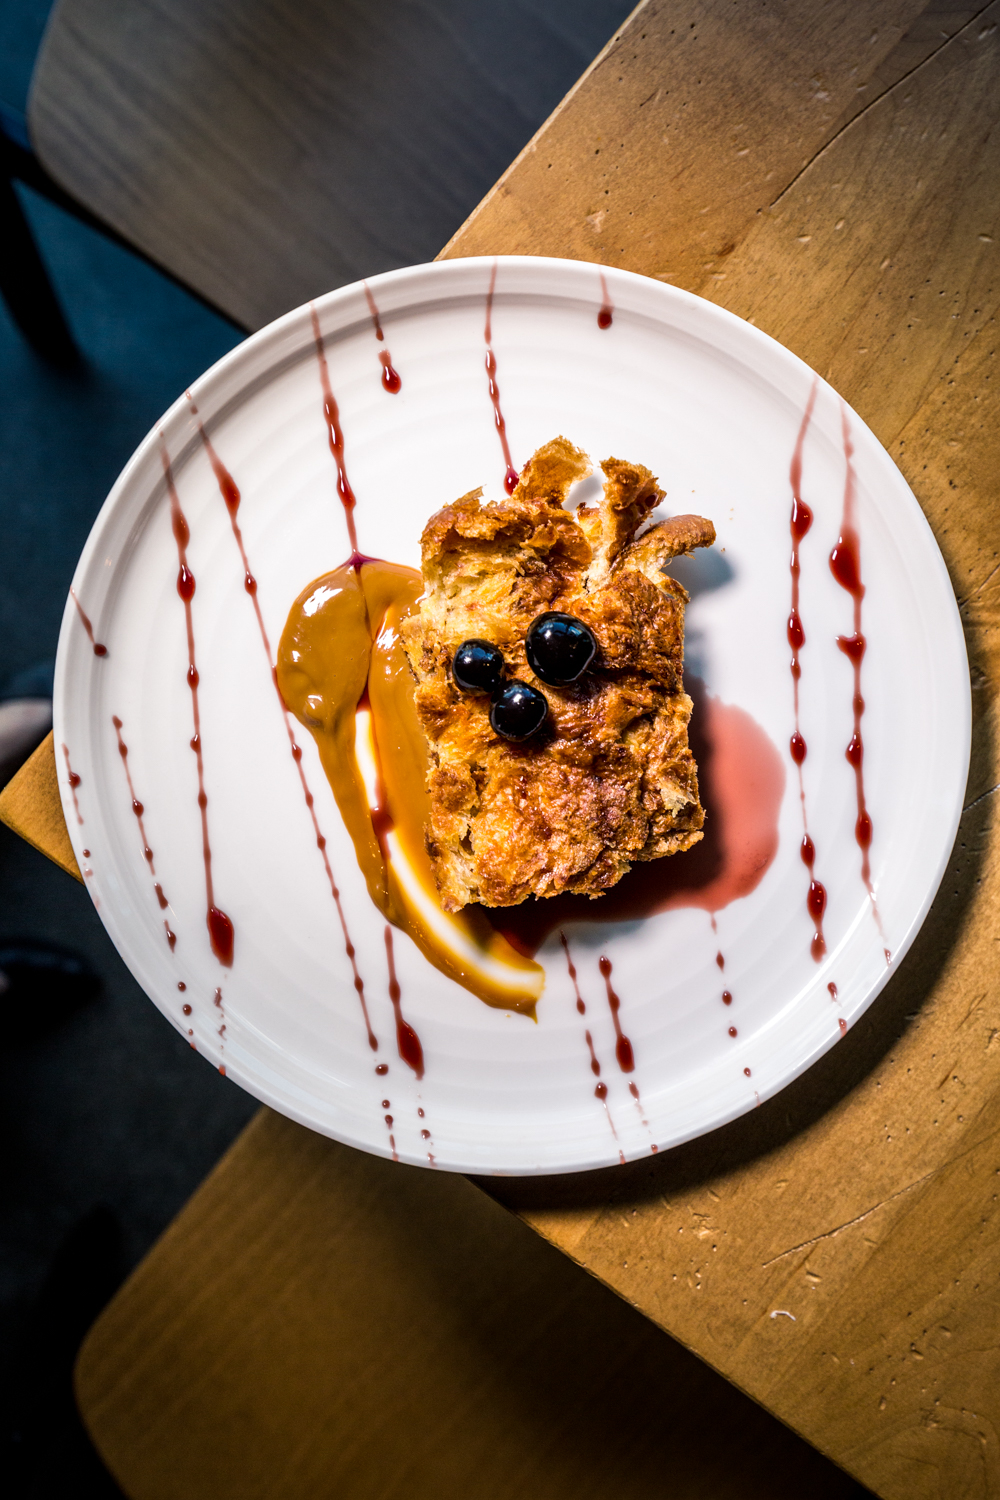 Parlor Bread Pudding: buttery and soft croissant bread pudding with homemade warm caramel sauce, Luxardo cherries, and cherry cordial drizzle / Image: Catherine Viox{ }// Published: 10.10.19